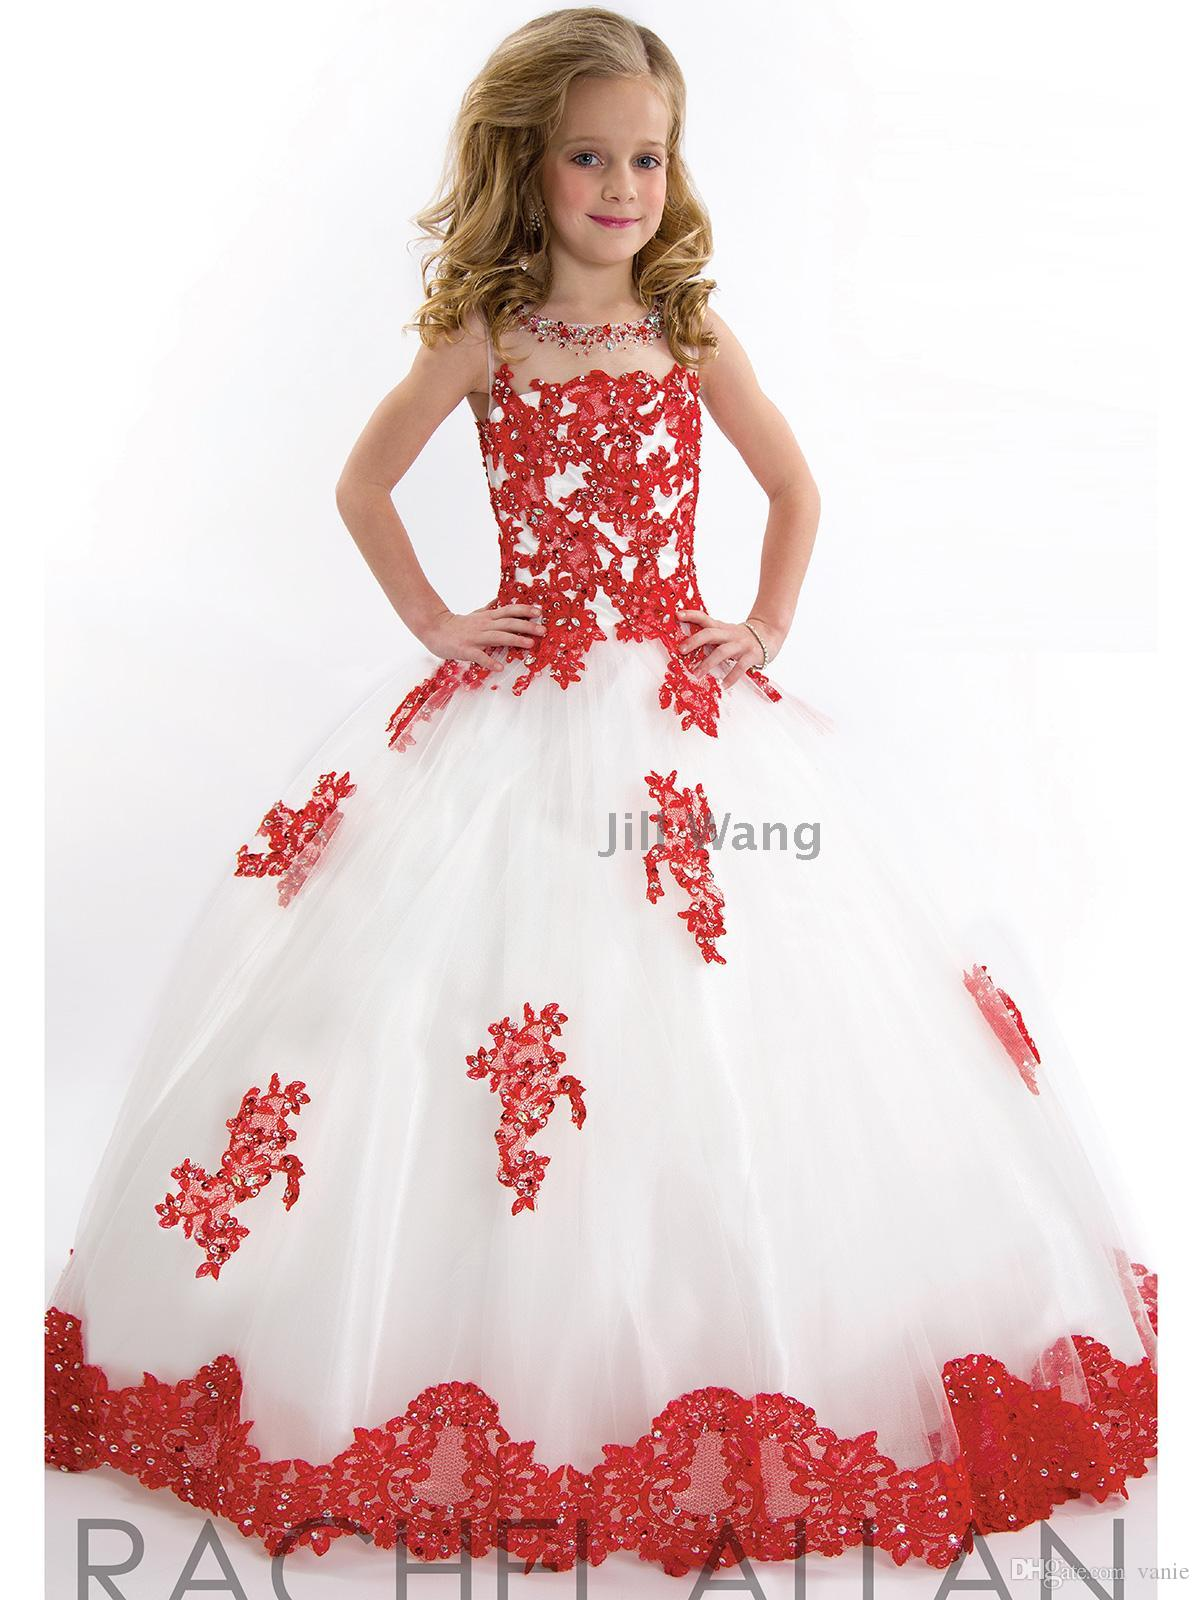 21 2018 Princess Flower Girl Dresses For Weddings Girls White Red ...